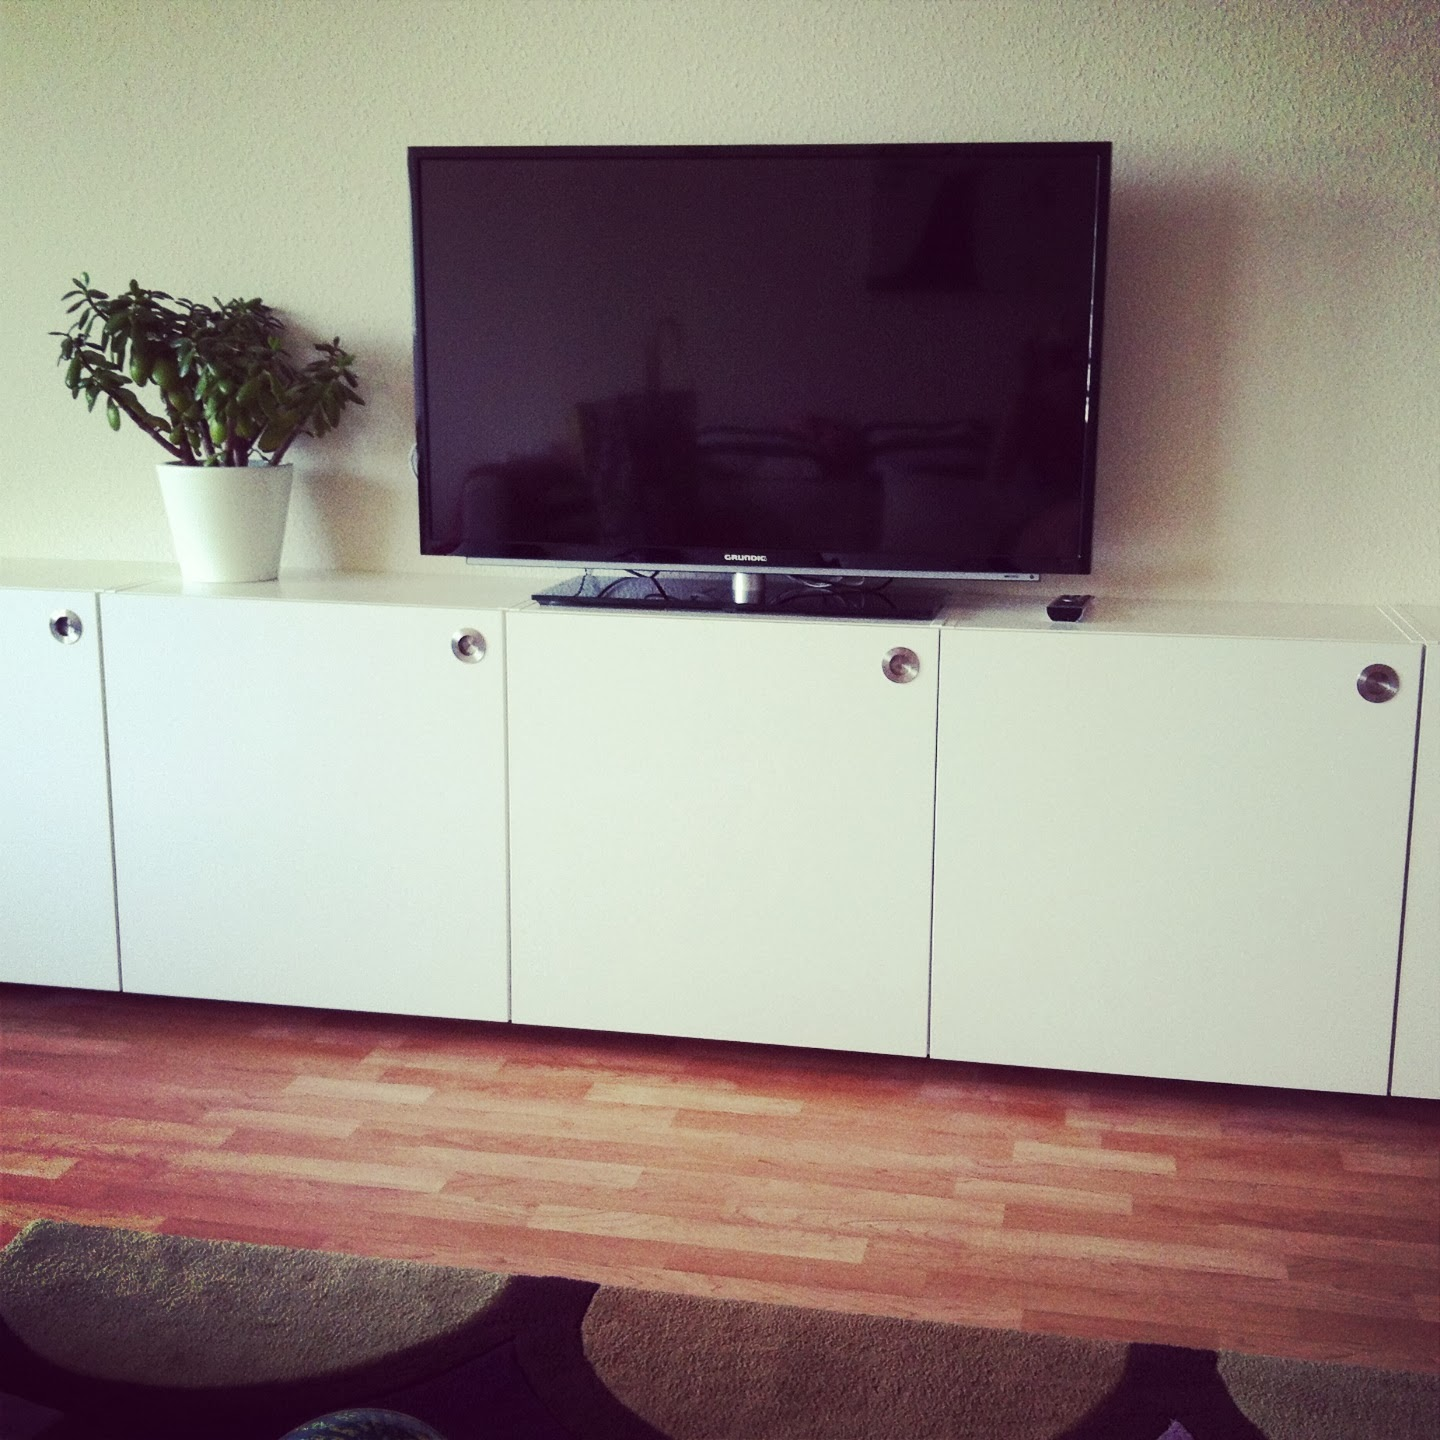 udden tv solution ikea hackers ikea hackers. Black Bedroom Furniture Sets. Home Design Ideas